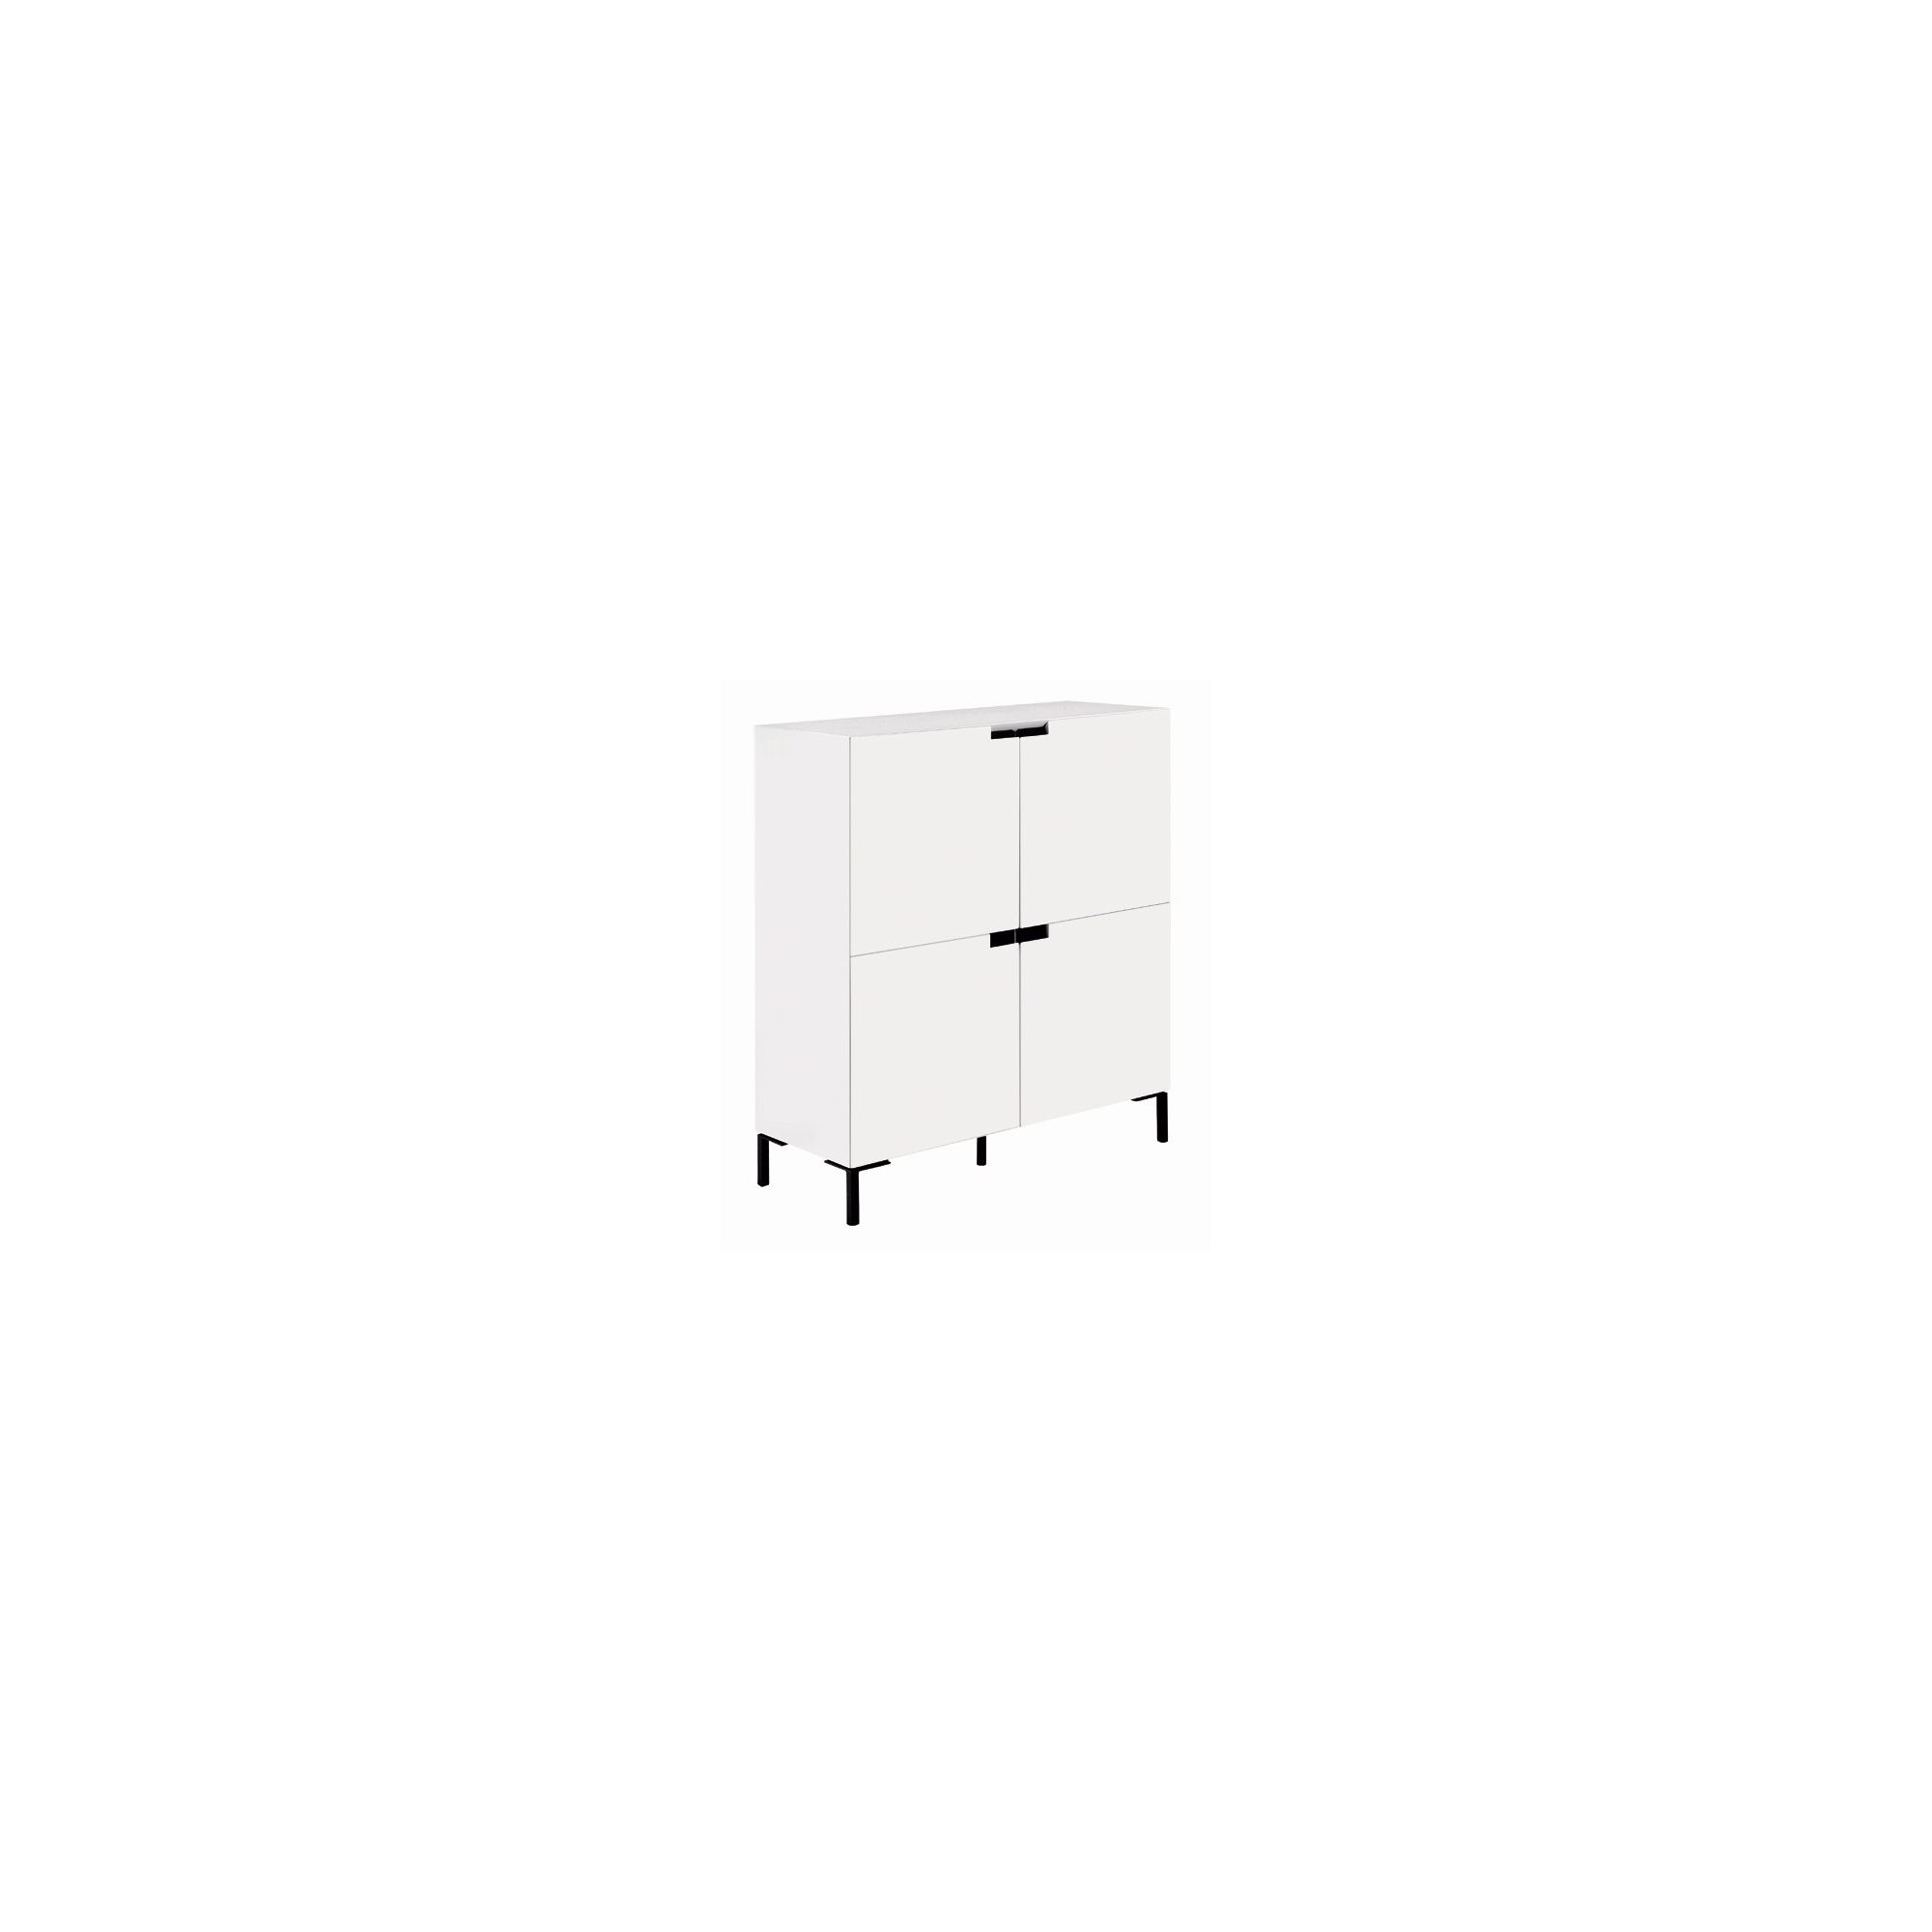 Gillmore Space Vico Square Sideboard in White Gloss Lacquer at Tesco Direct